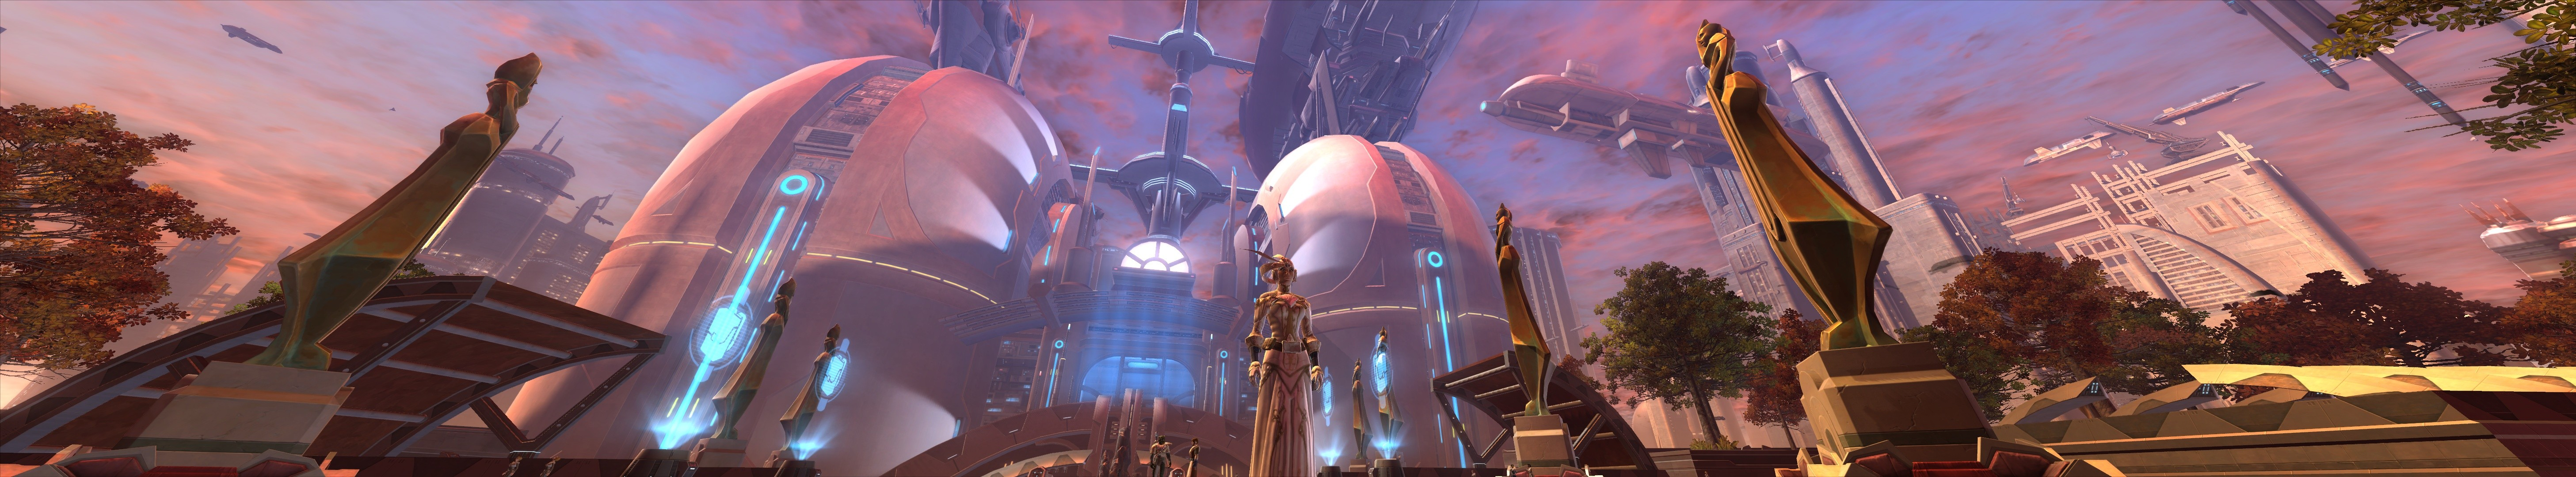 Star Wars: The Old Republic - Coruscant in full social gear